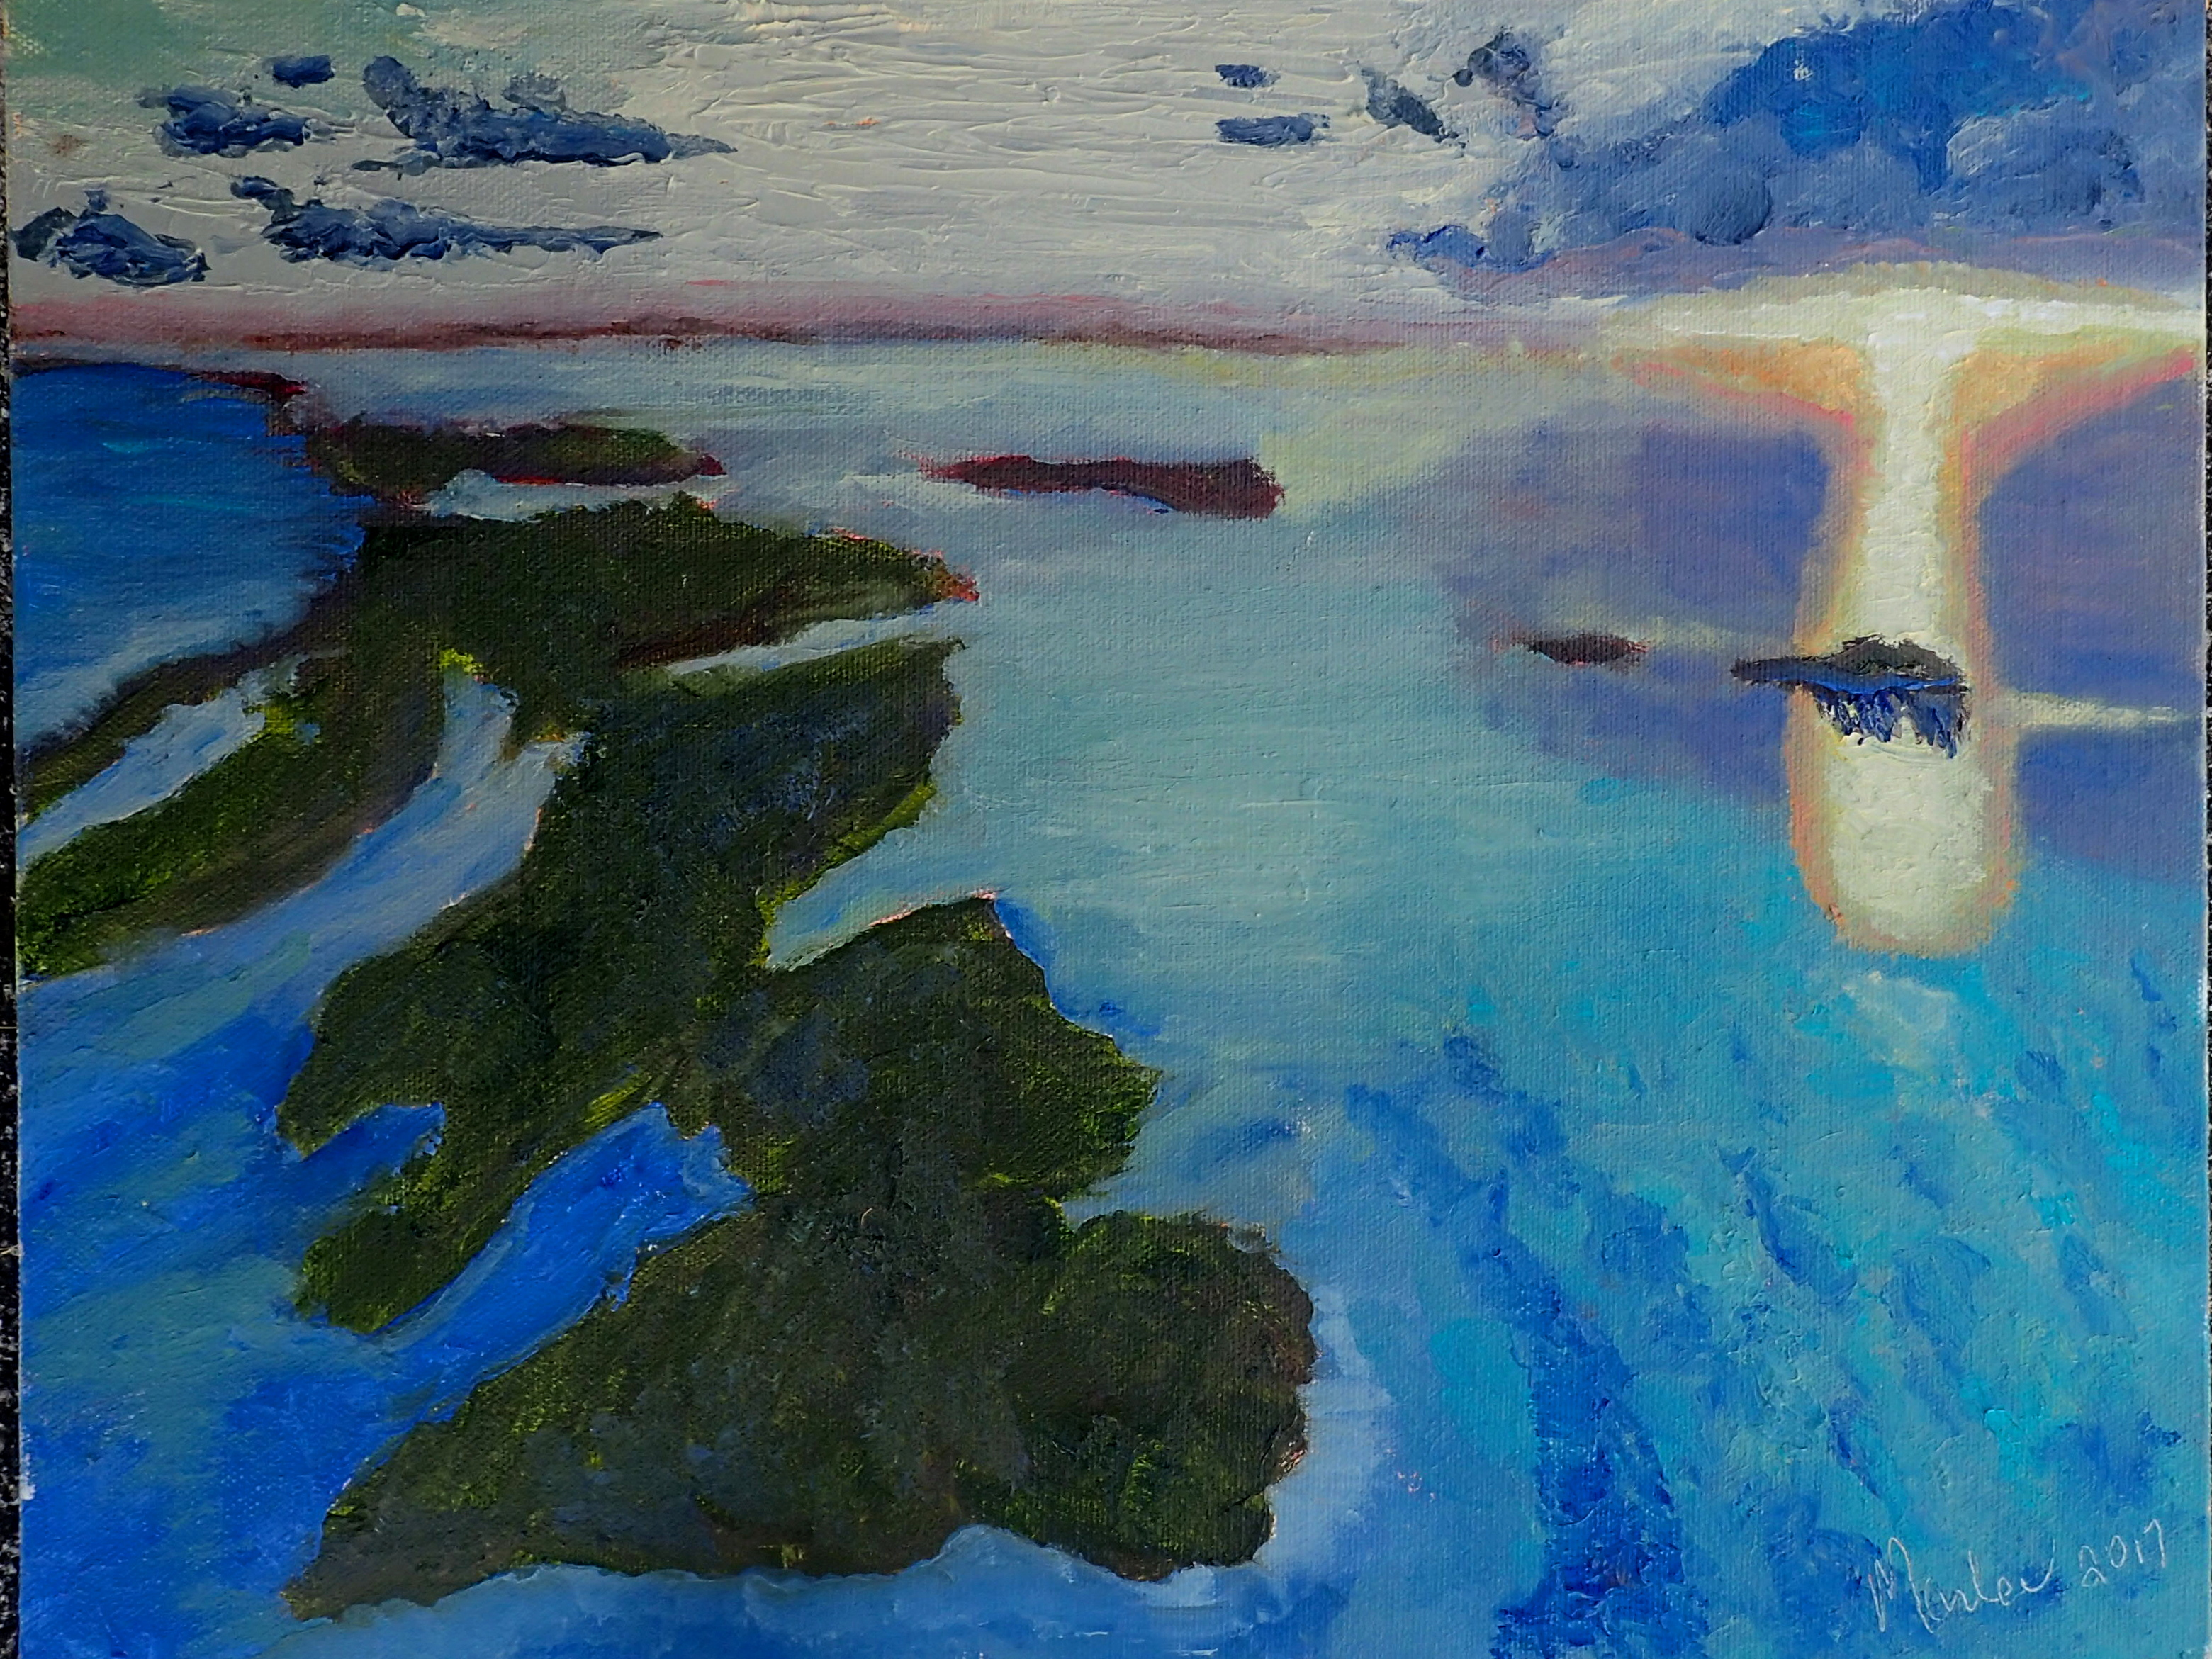 12x16 Original Oil on Canvas         An aerial view of Elbow Cay, Abaco at sunset without the impression of human development.  The sunset cast a heavenly view of this beautiful island.  Photo by Chri